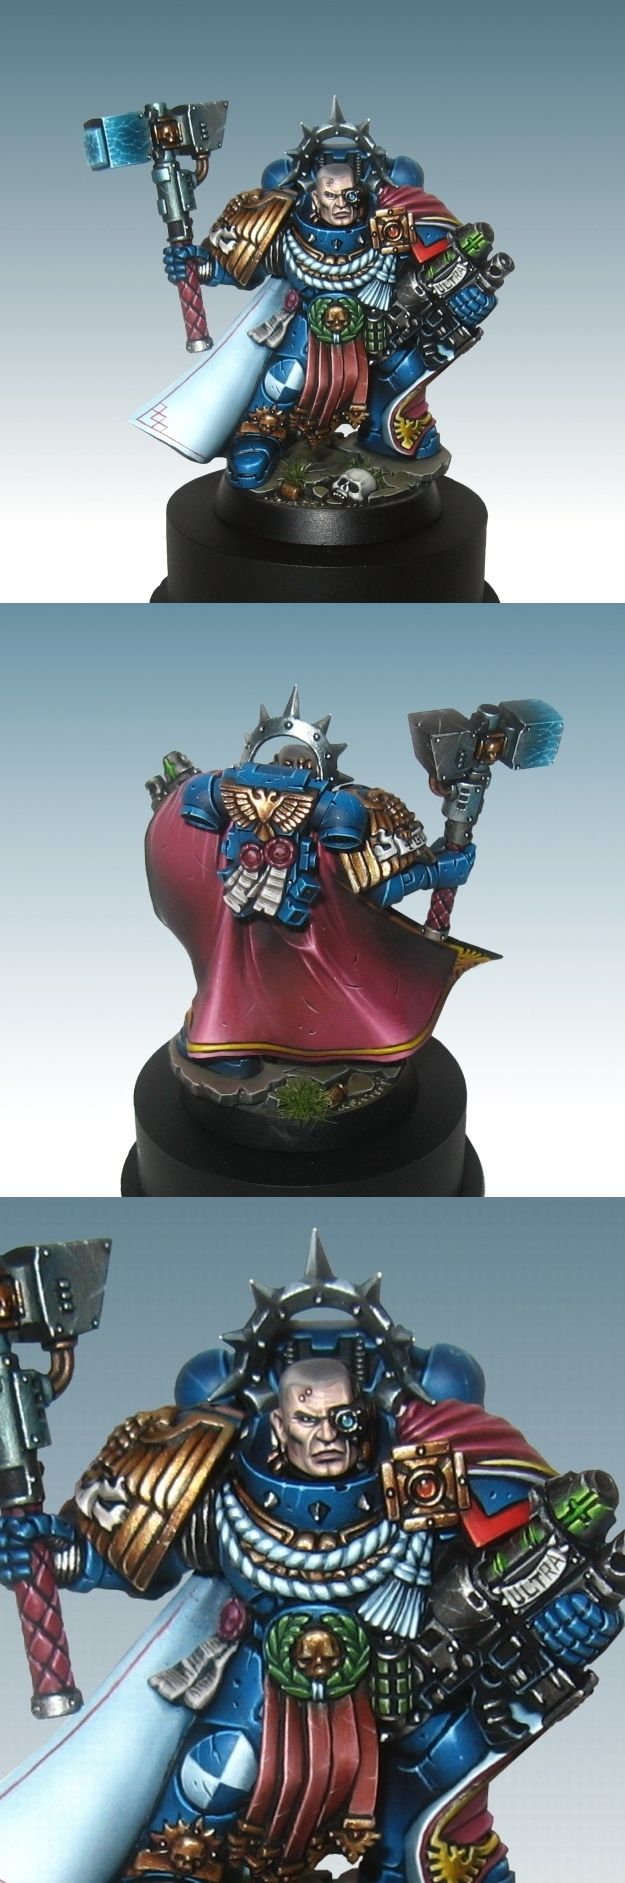 Space Marine Captain of the Ultramarines chapter.